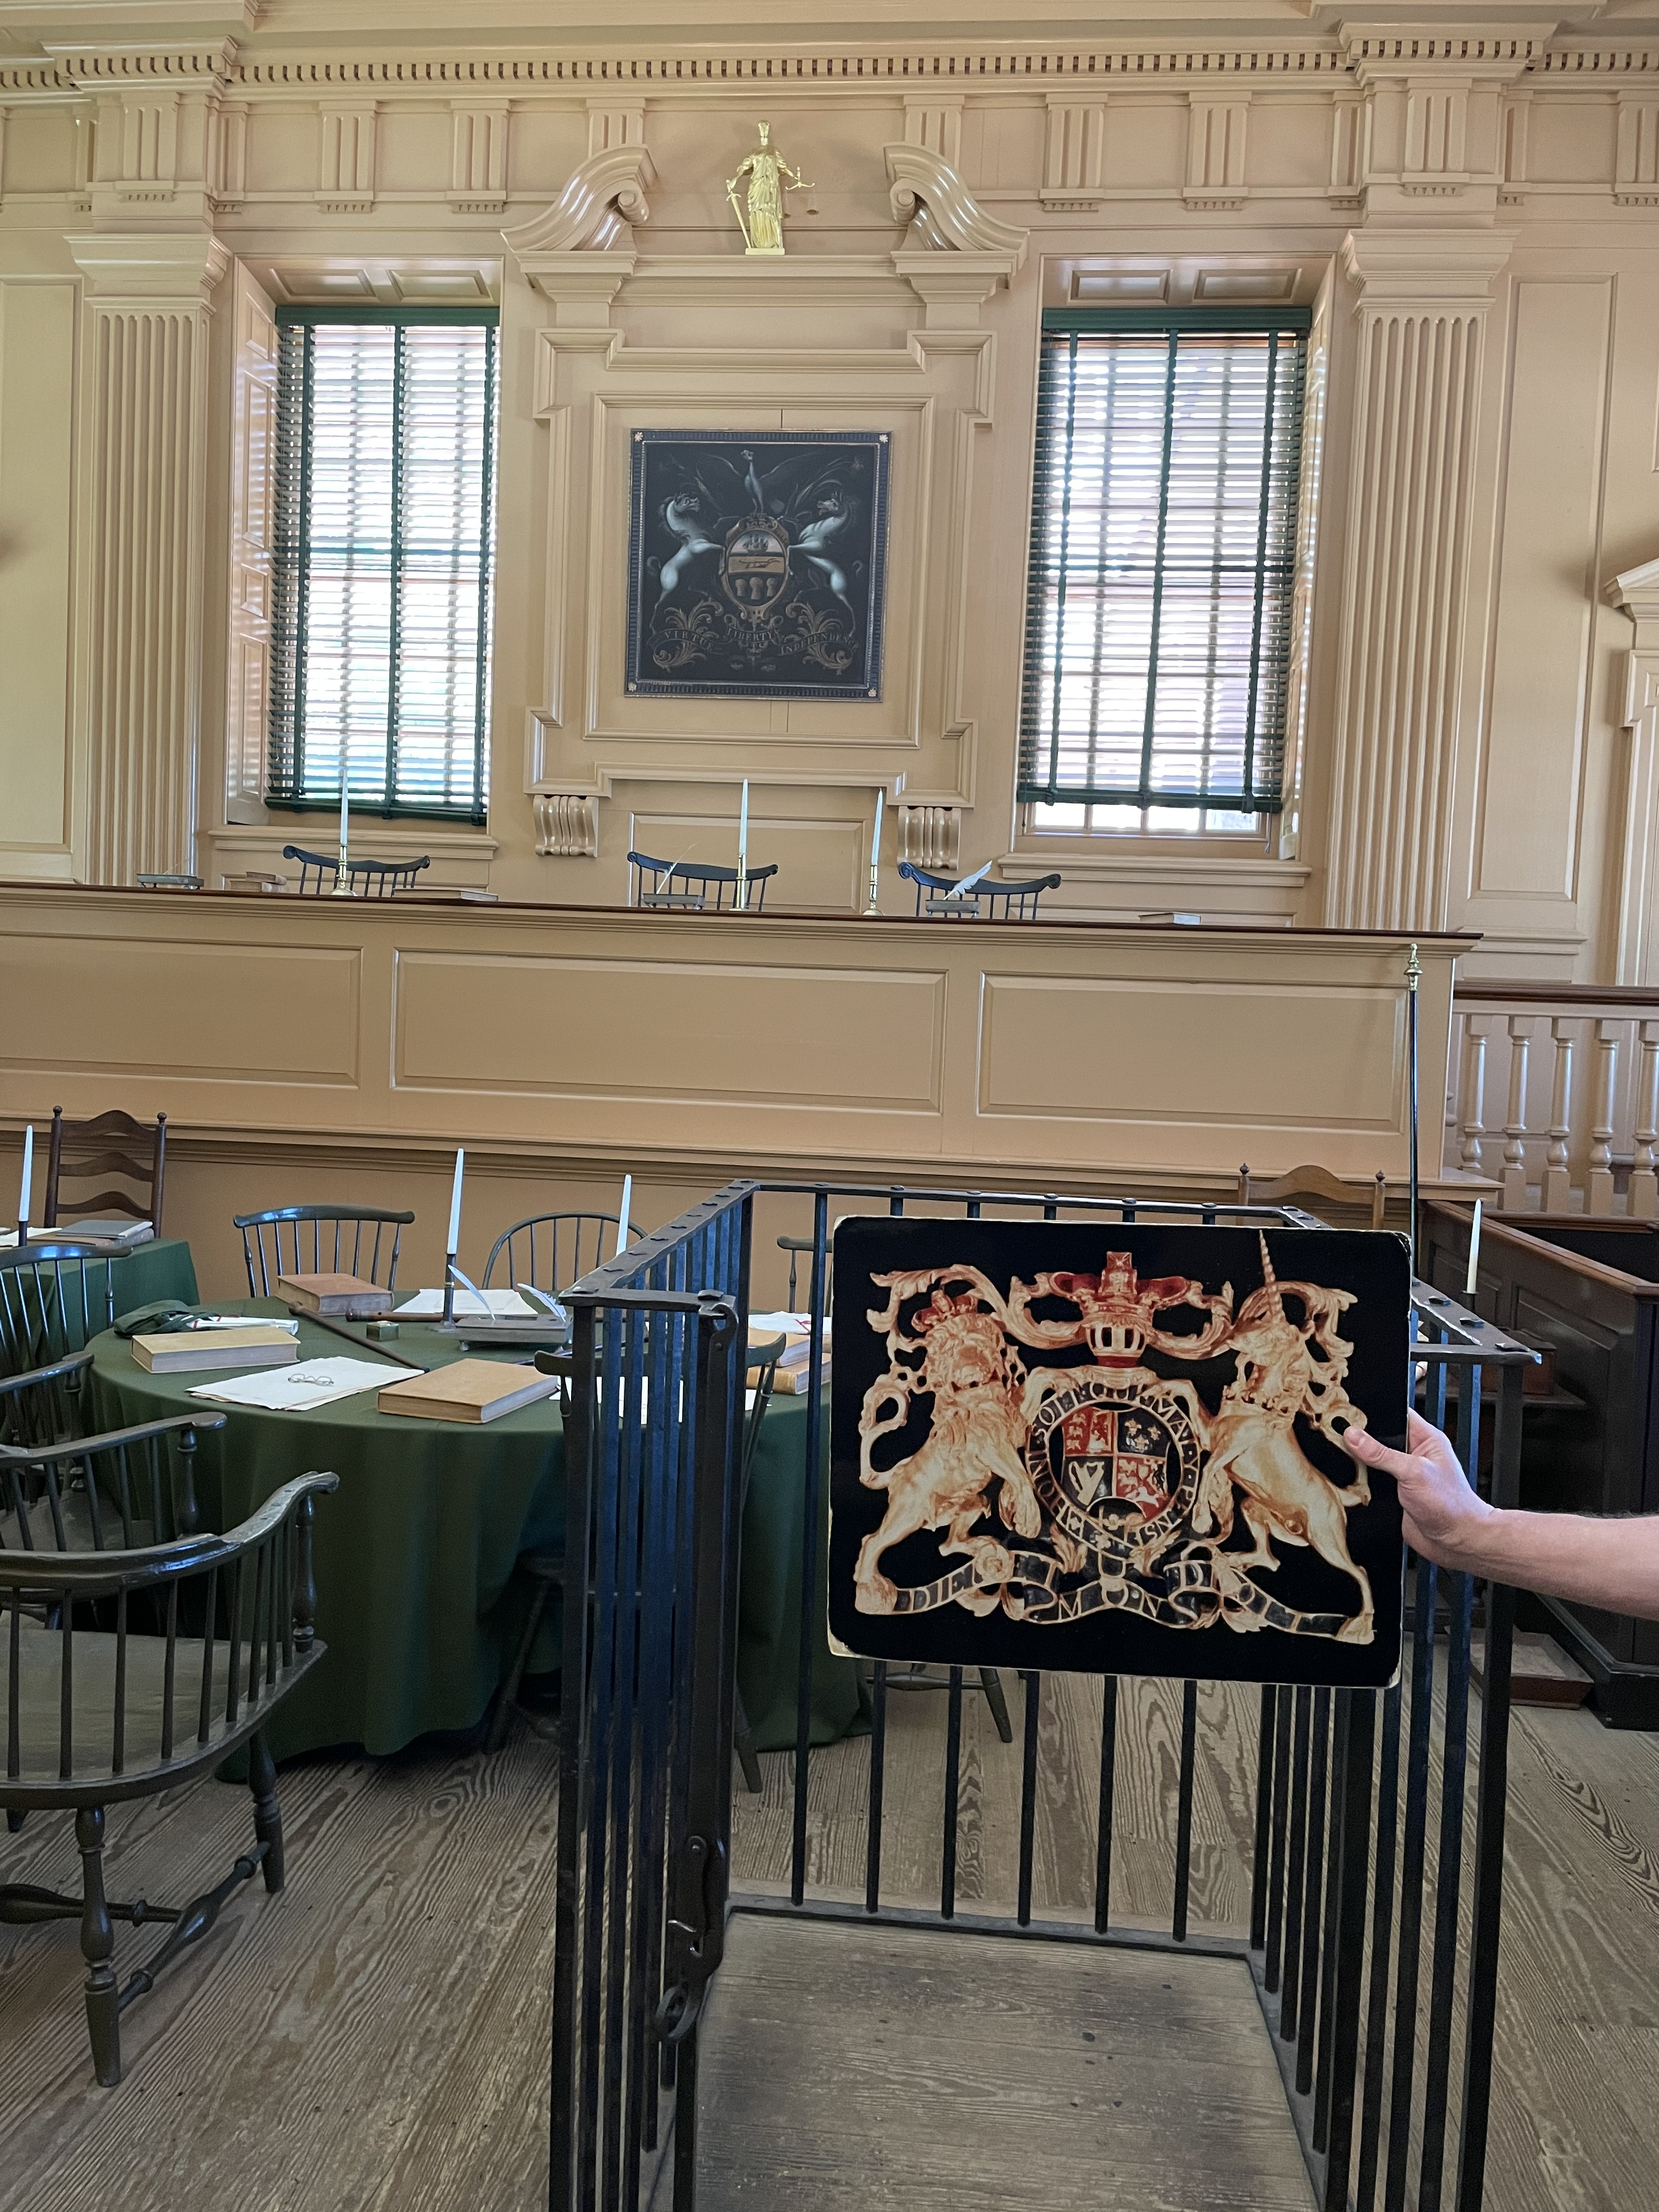 British court of arms and that of Pennsylvania in Court Room of Independence Hall